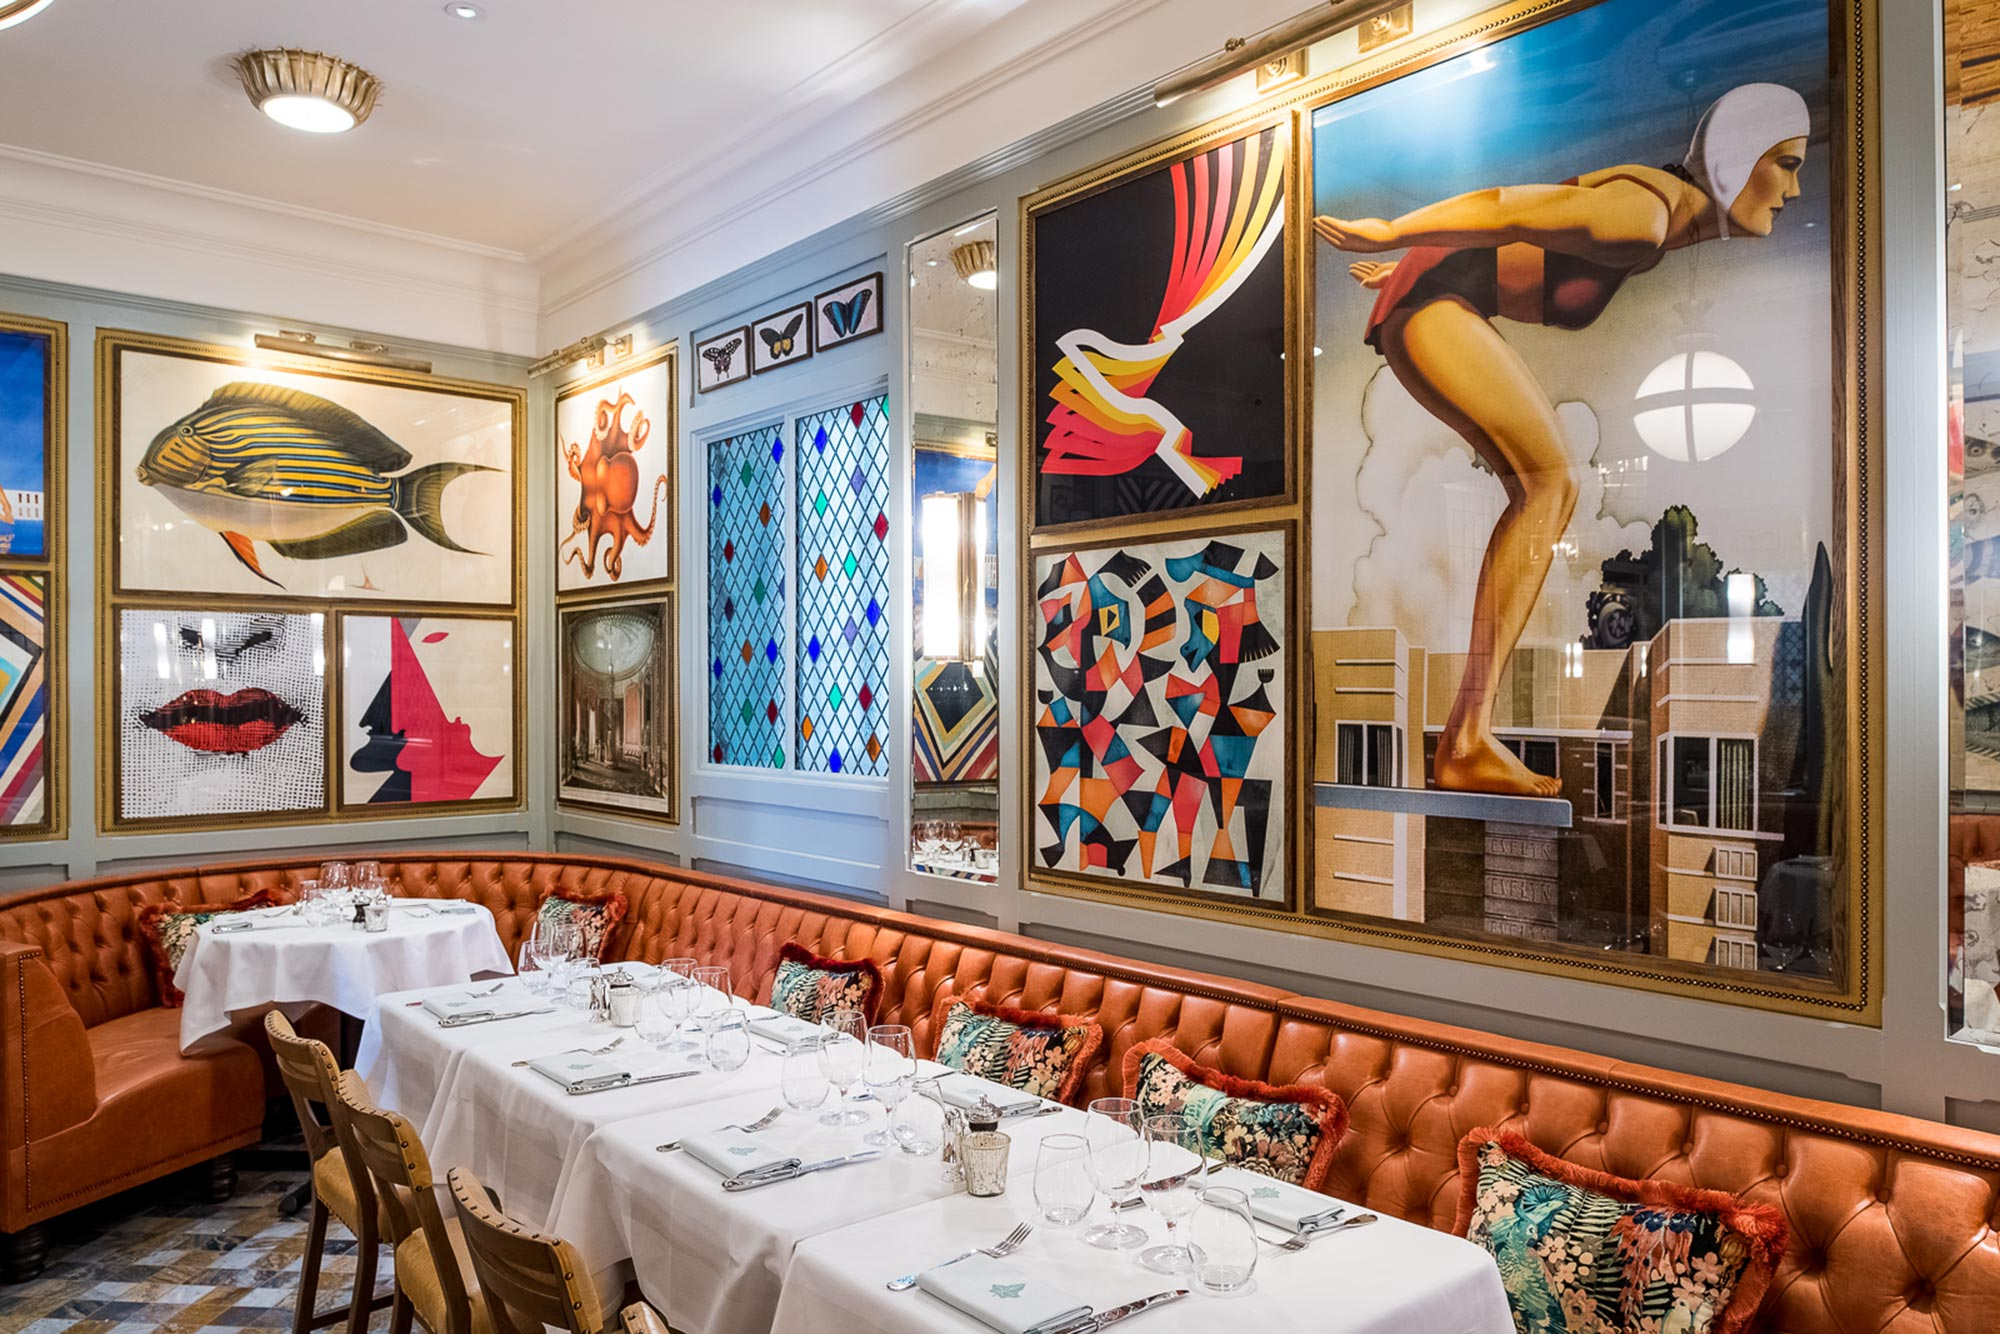 Where to eat in Brighton - The Ivy in the Lanes Brighton - The Ivy In The Lanes – Brighton